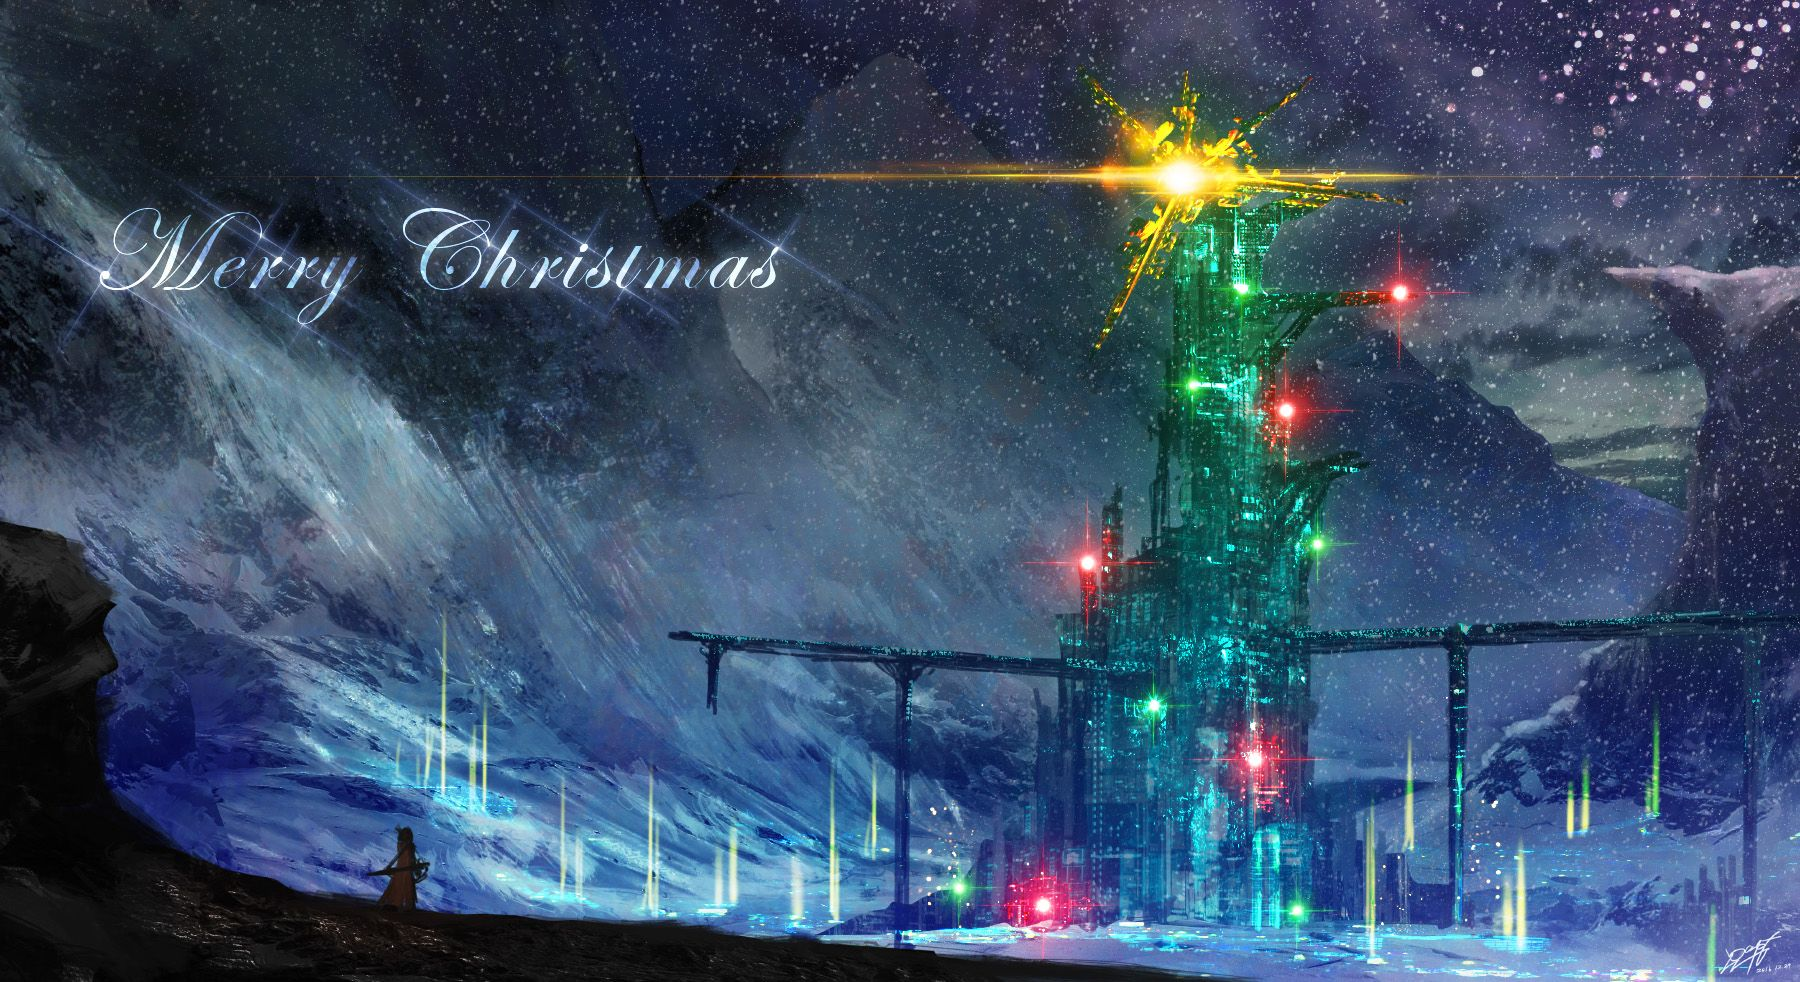 1800x982 Christmas Wallpaper and Background Image | 1800x982 | ID:881865